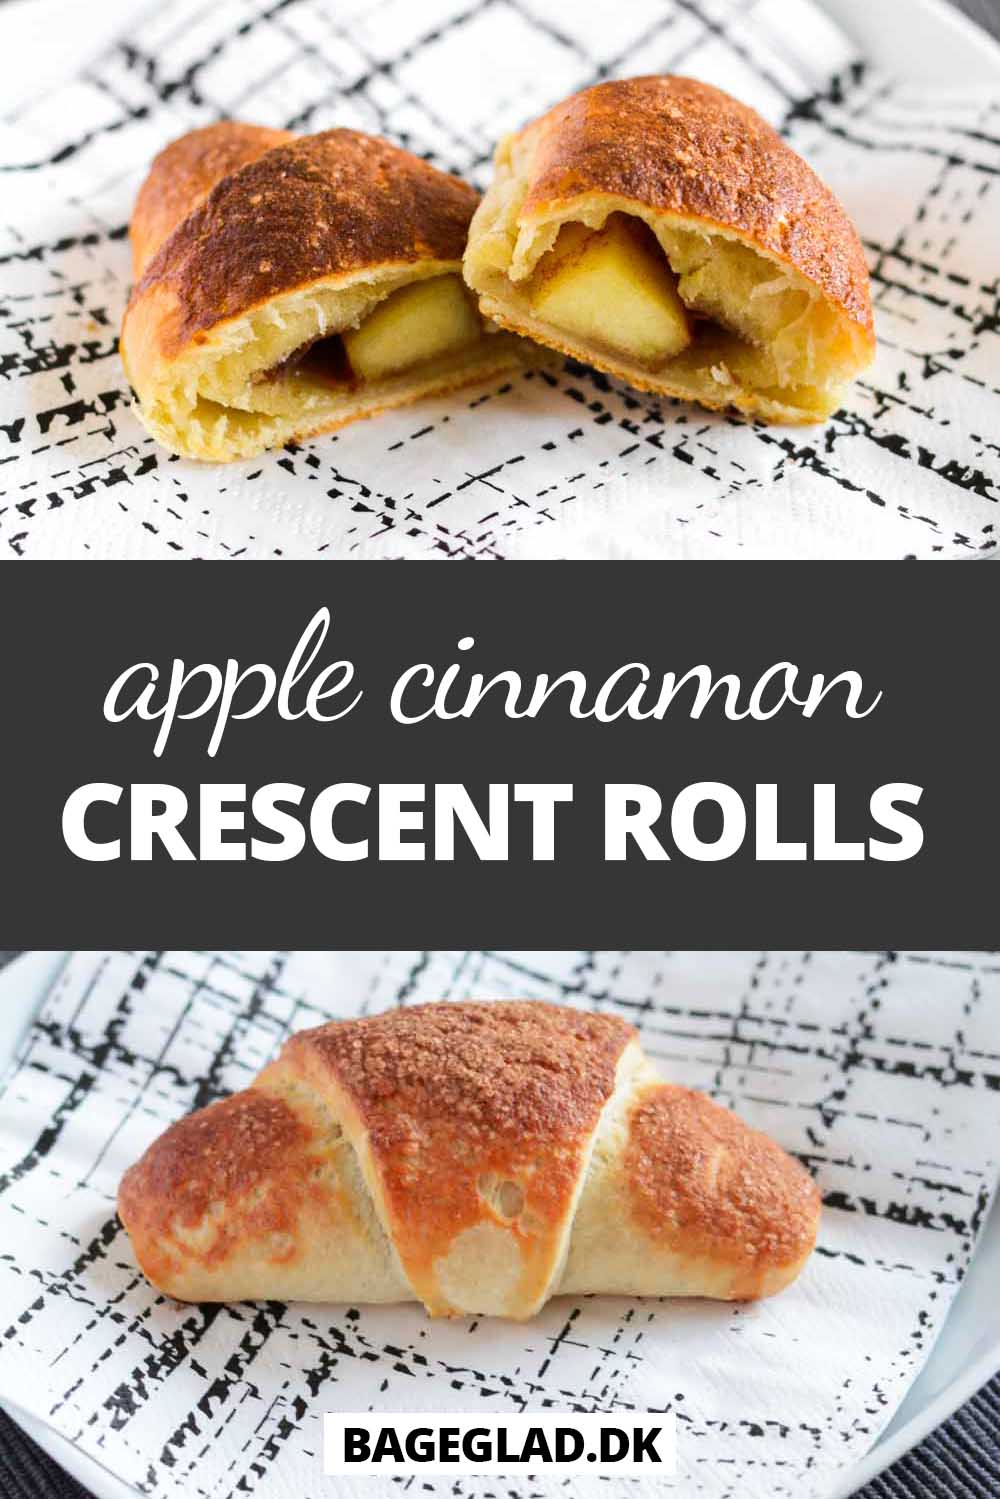 Apple cinnamon crescent rolls recipe